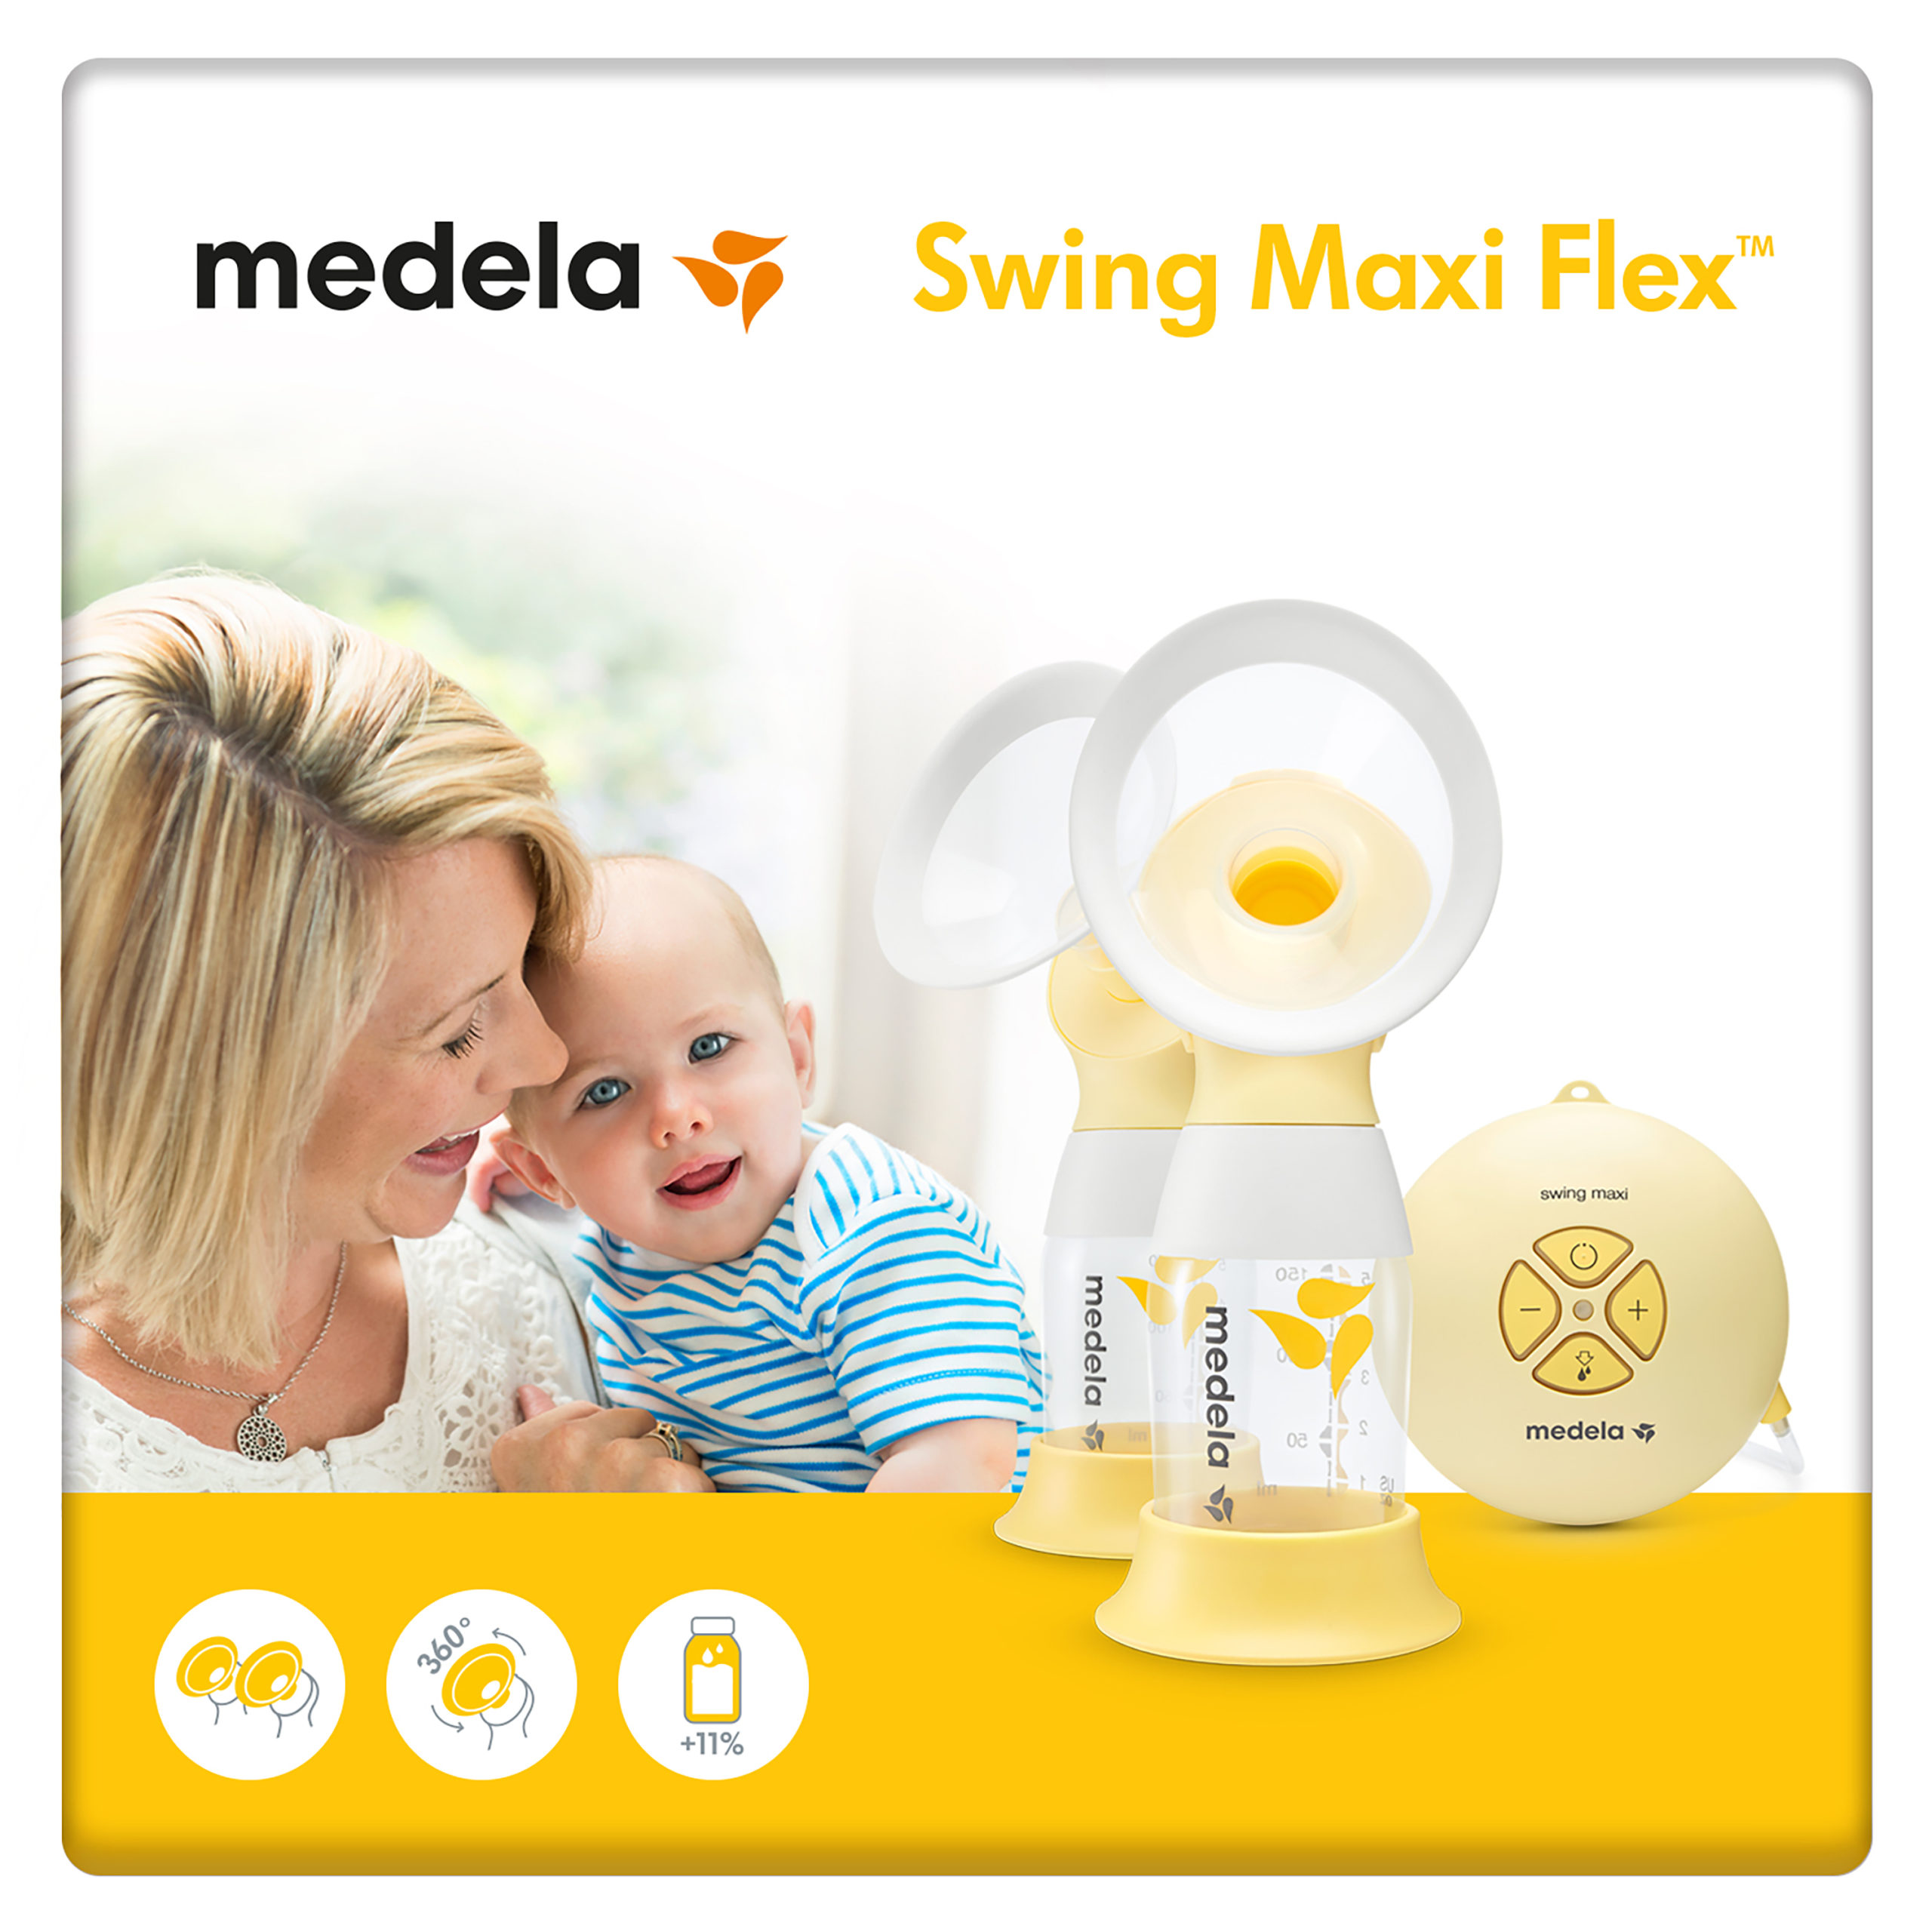 Swing Maxi Flex 2 Phase Double Electric Breast Pump Medela